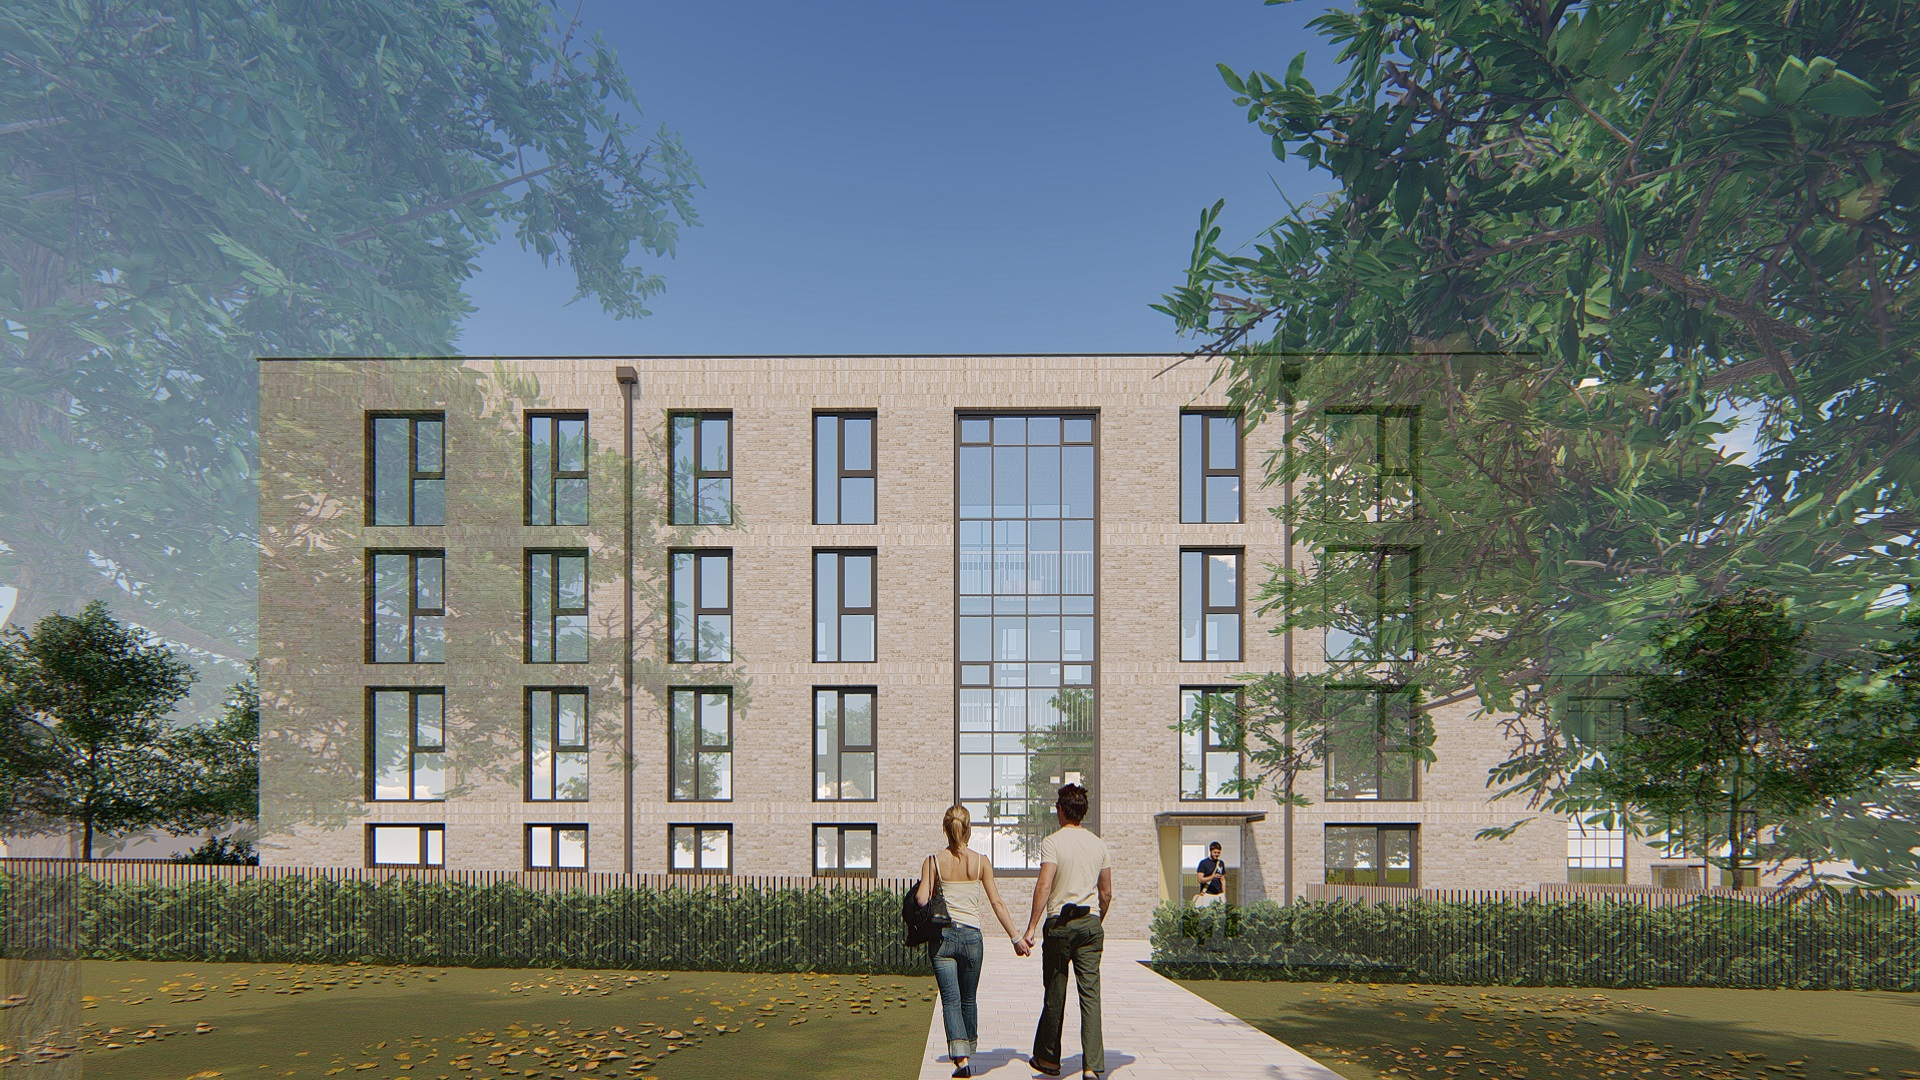 Visualisation of the completed refurbishment of Bradford Park flats